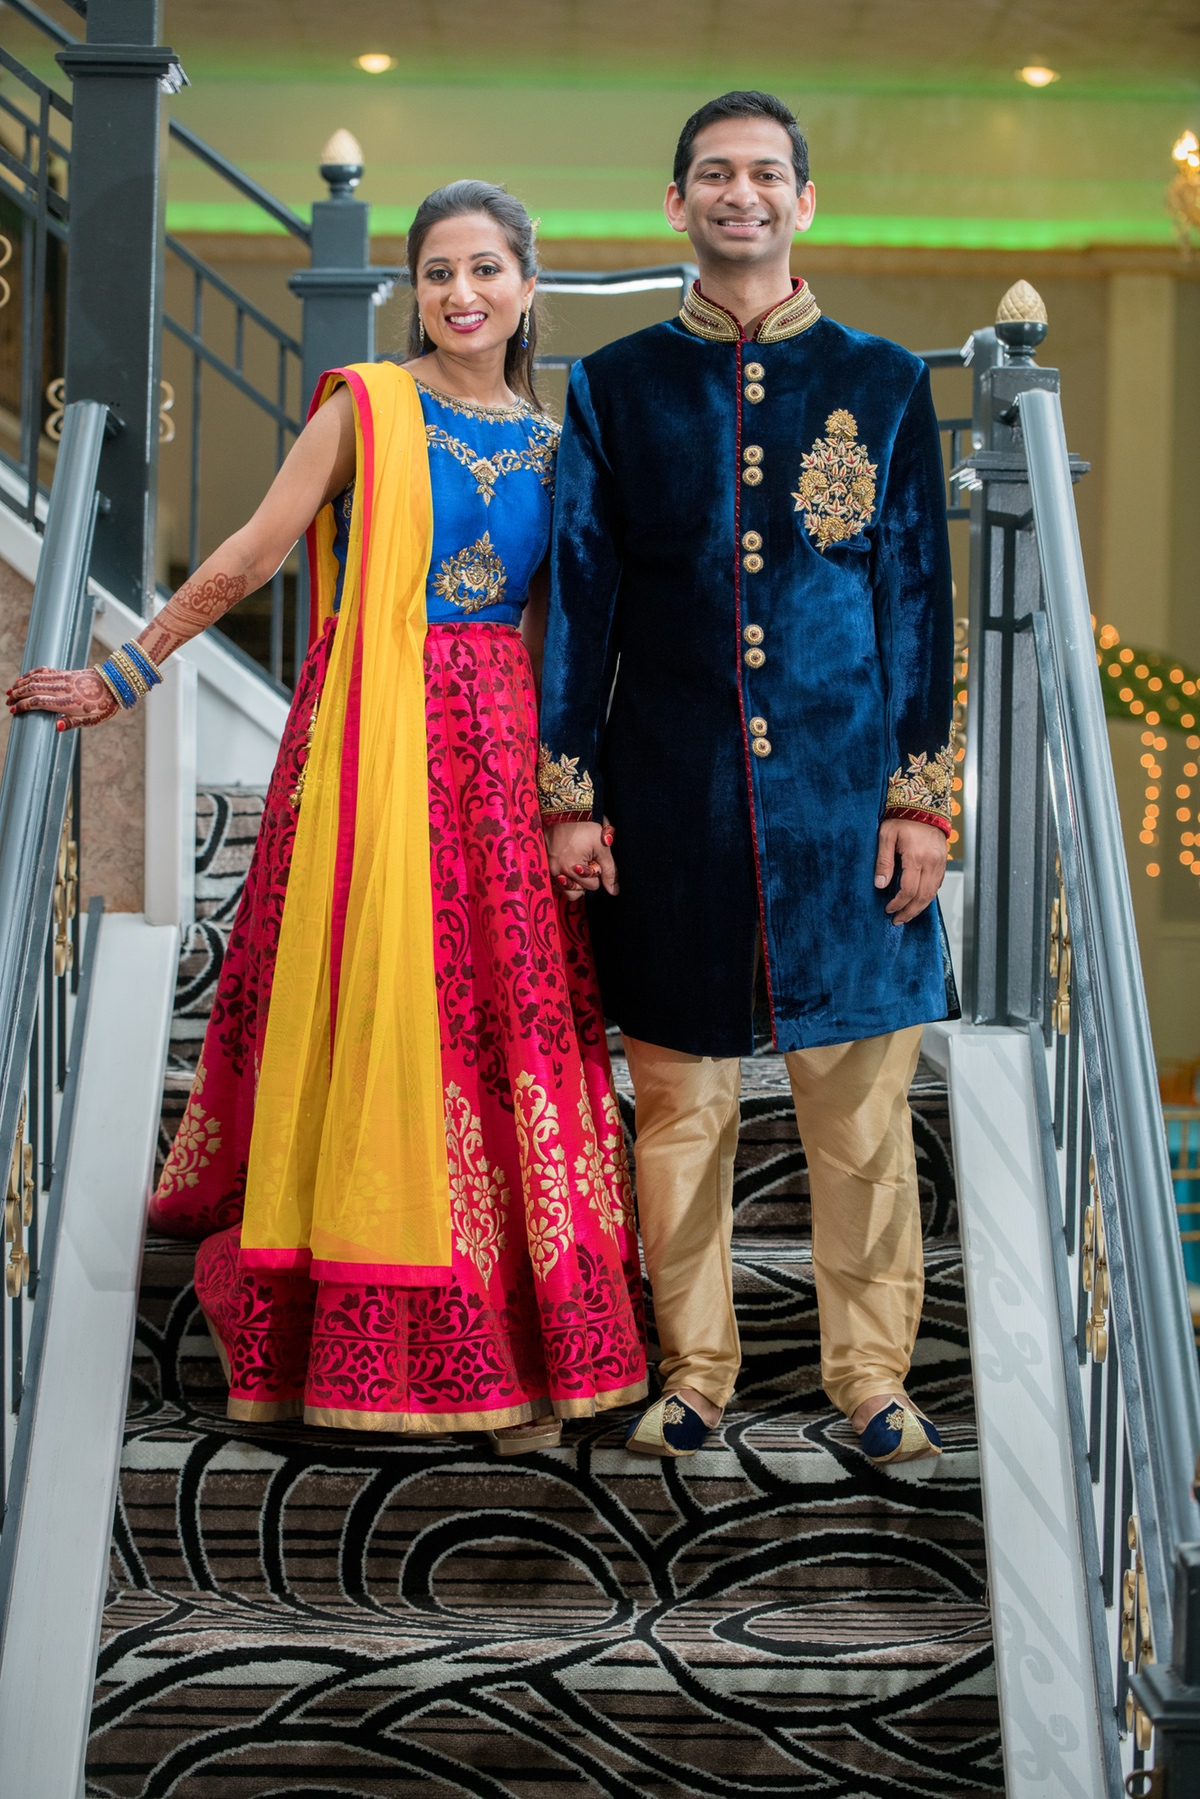 Le Cape Weddings - South Asian Wedding - Chicago Wedding Photographer P&V-12-2.jpg